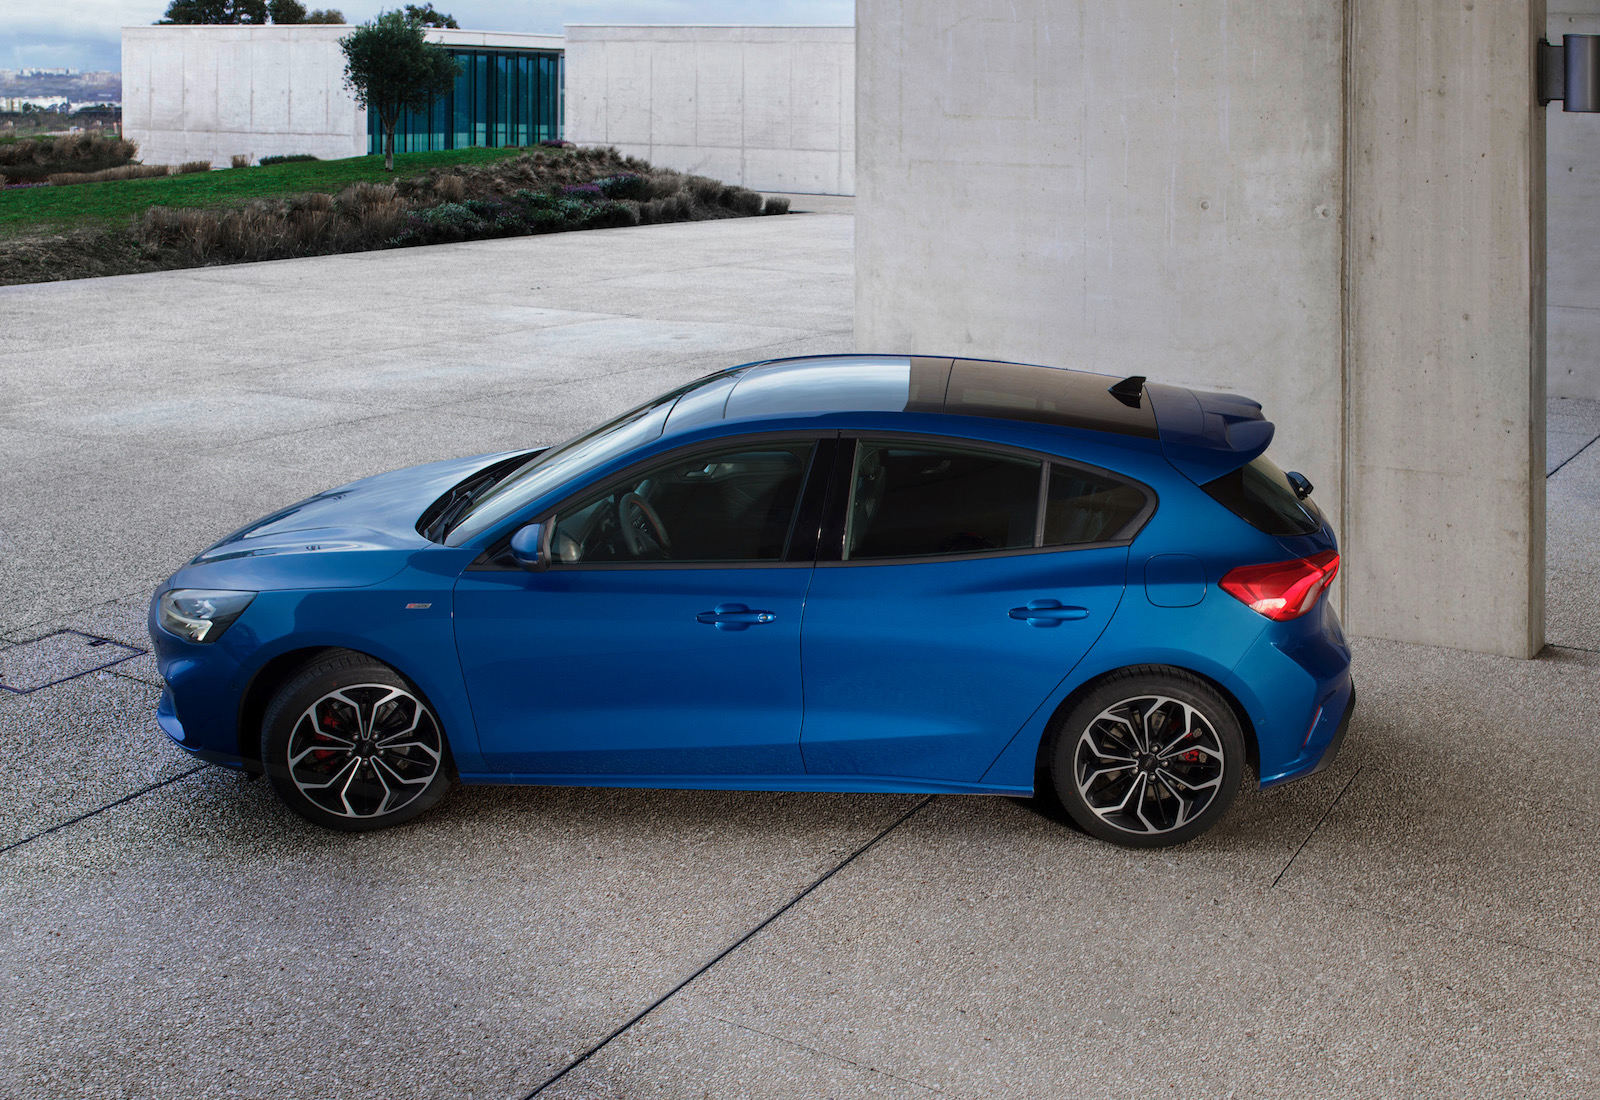 Ford Focus 2019 St >> 2019 Ford Focus unveiled, Active crossover & ST-Line added | PerformanceDrive